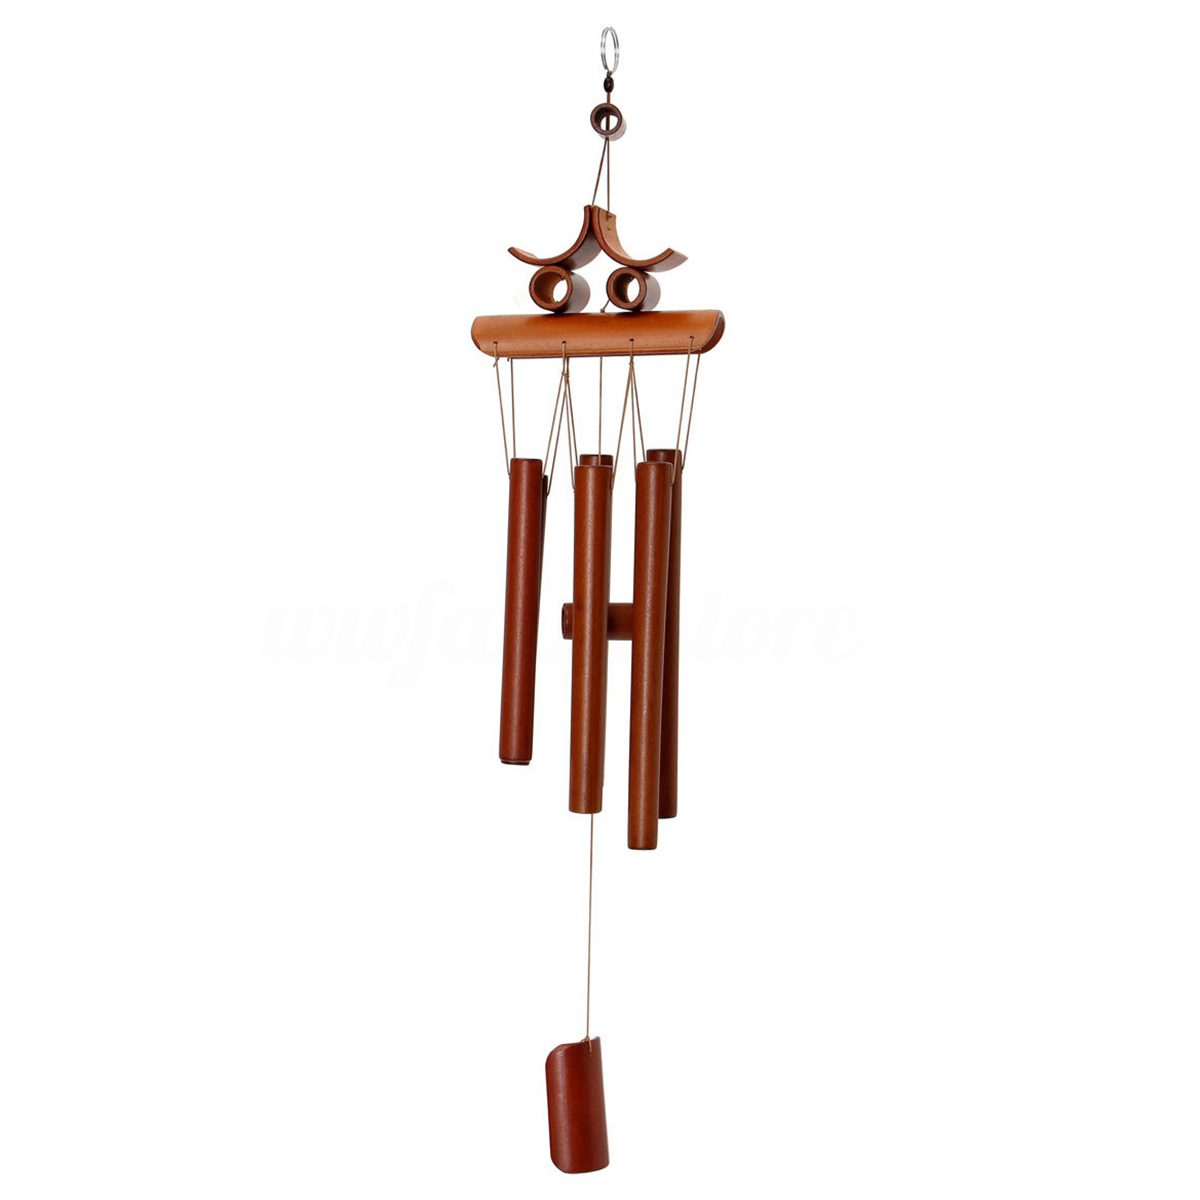 Bamboo Wind Chime Windchime Garden Yard Ornament Decoration Home Decor Lucky